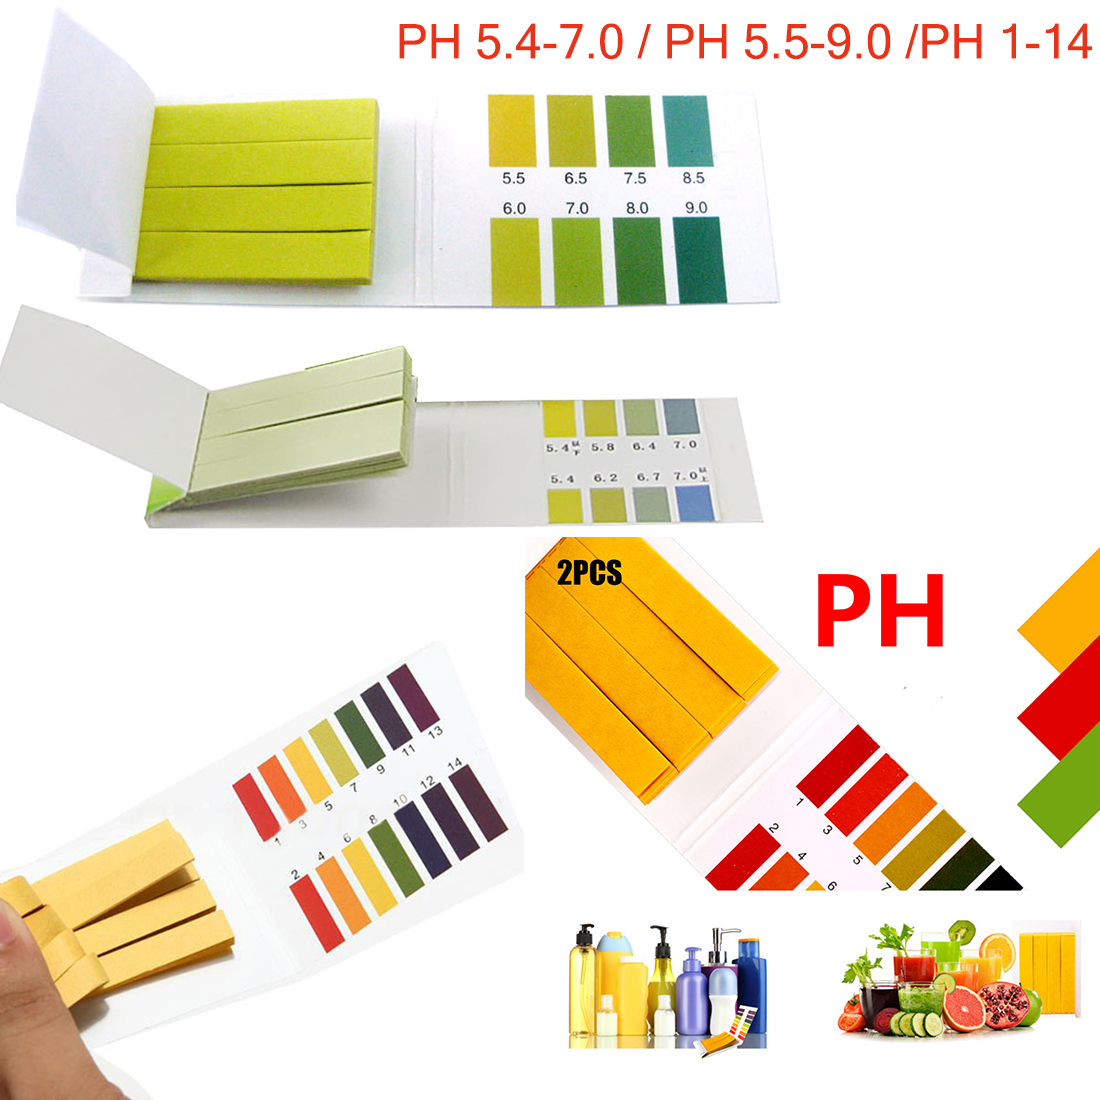 PH 5.4-7.0,PH 5.5-9.0,PH 1 -14  Alkaline Test Papers Strips Indicator Lab Supplies Litmus Testing Kit For Plant,Water 80 Strips